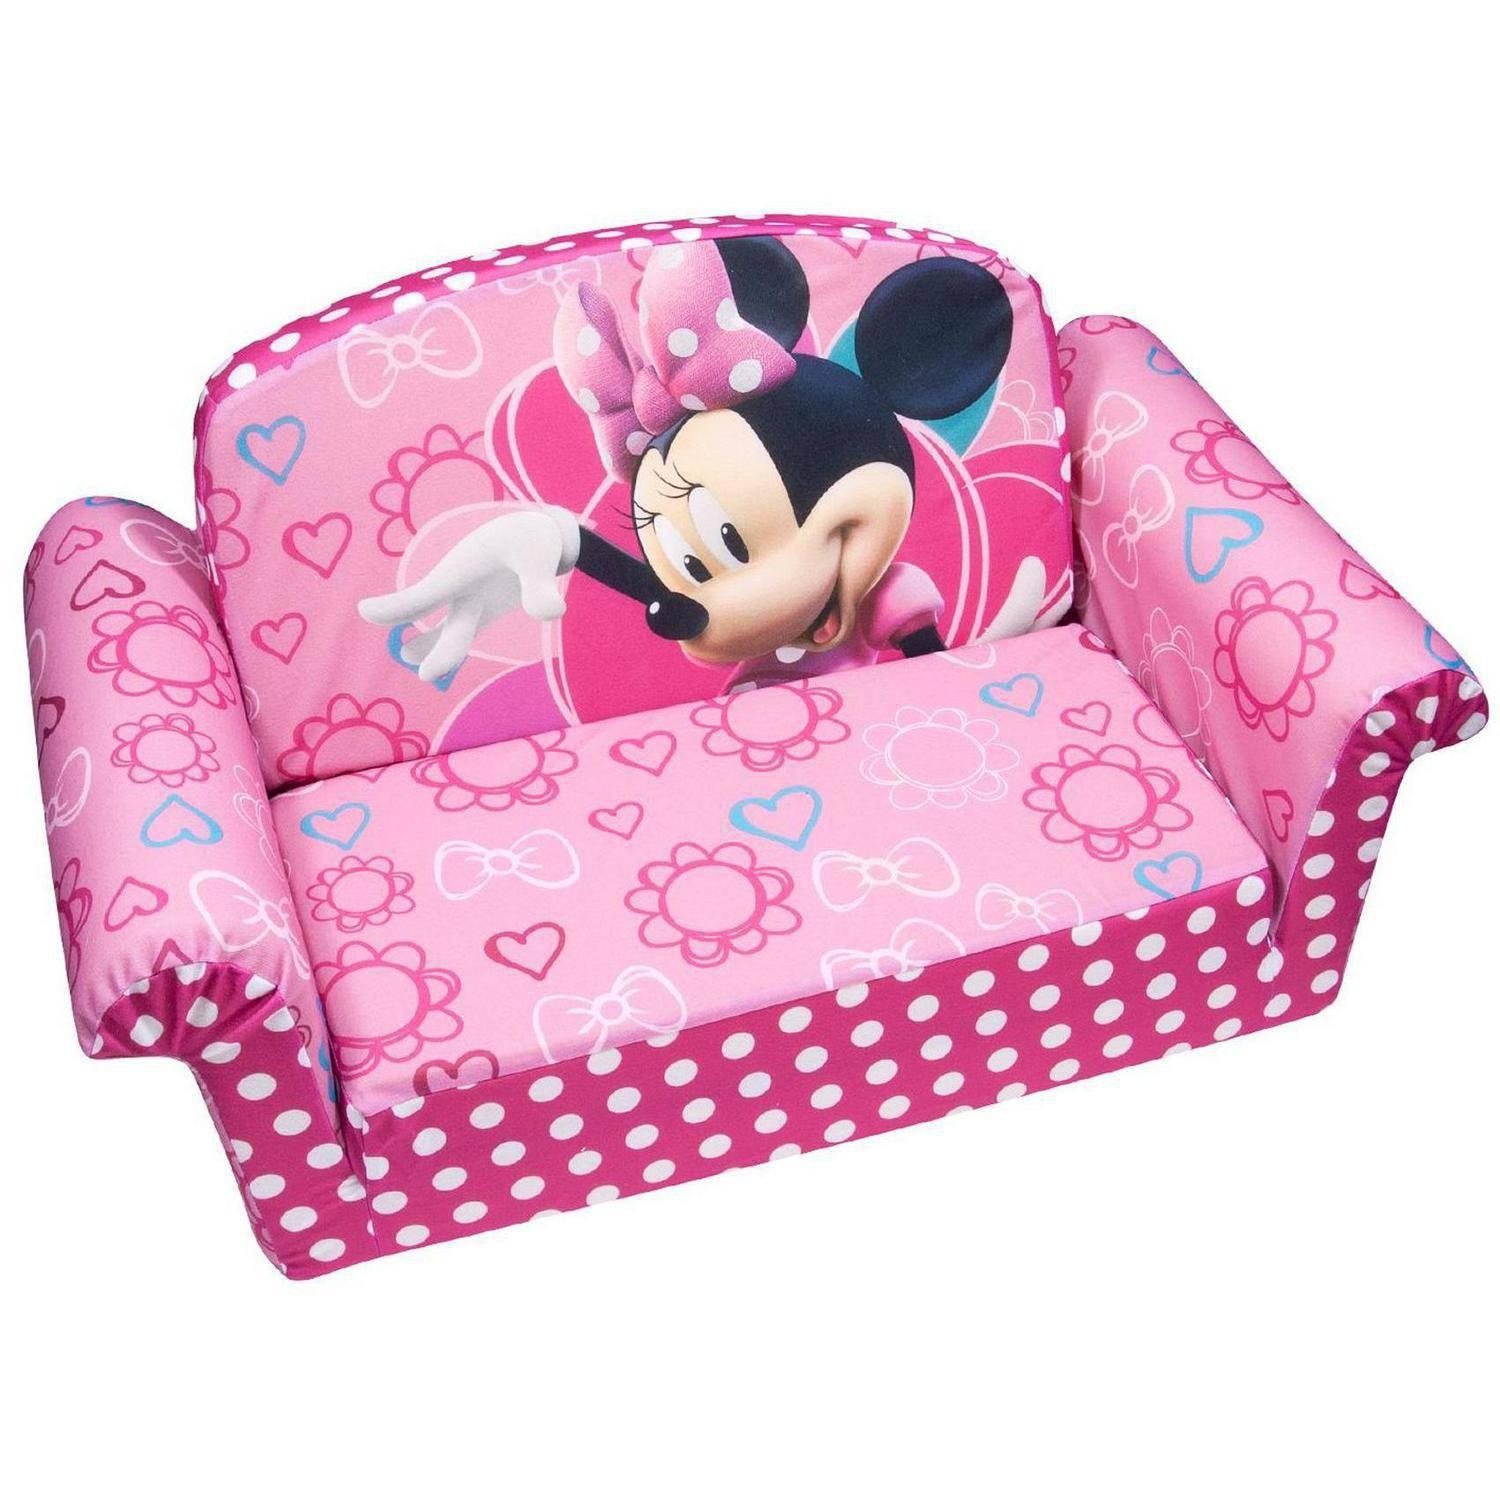 Sofas Center : Baby Beds Keko Furniture Marvelous Sofa Photos With Regard To Sofa Beds For Baby (Image 12 of 20)